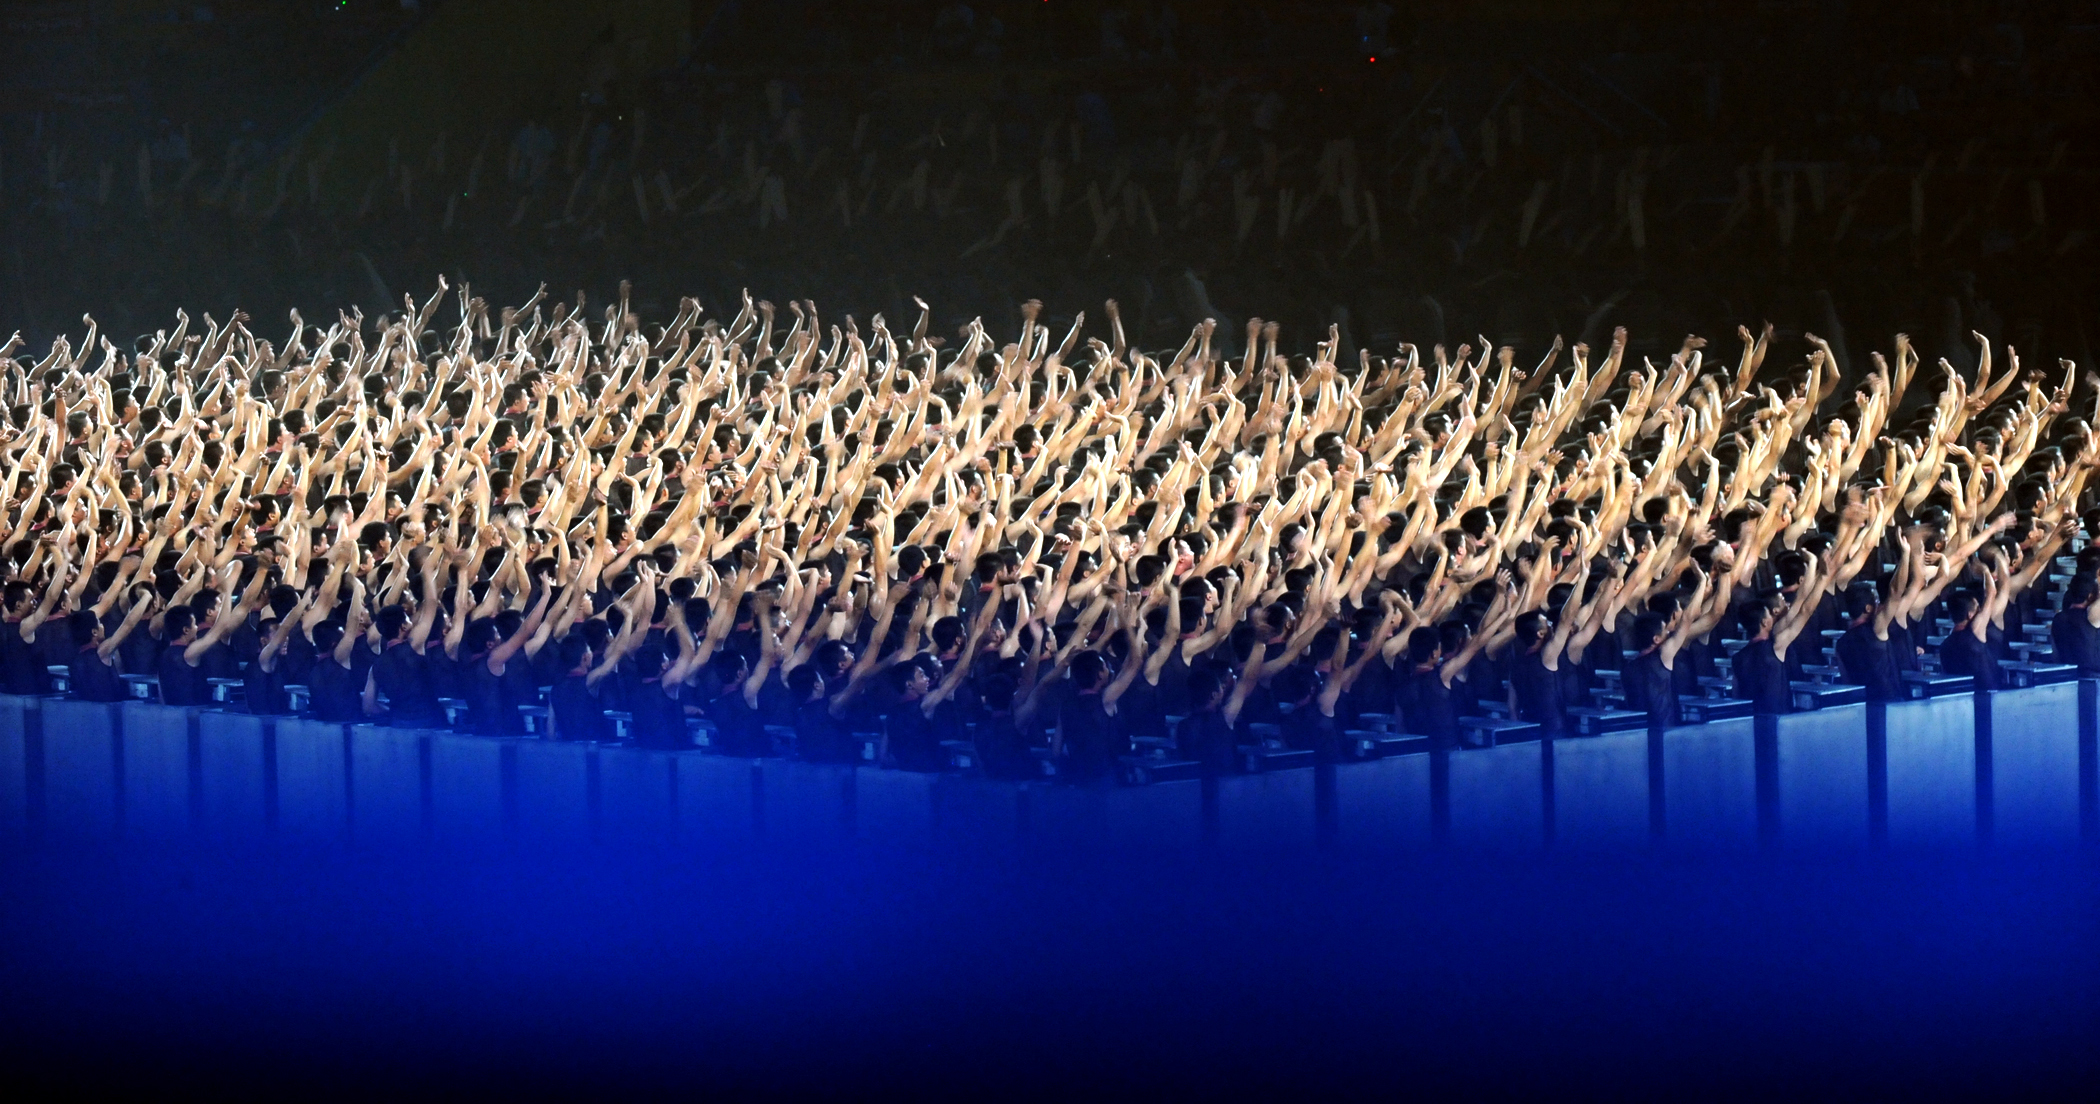 File:Hundreds of Chinese dancers during 2008 Summer Olympics opening ...